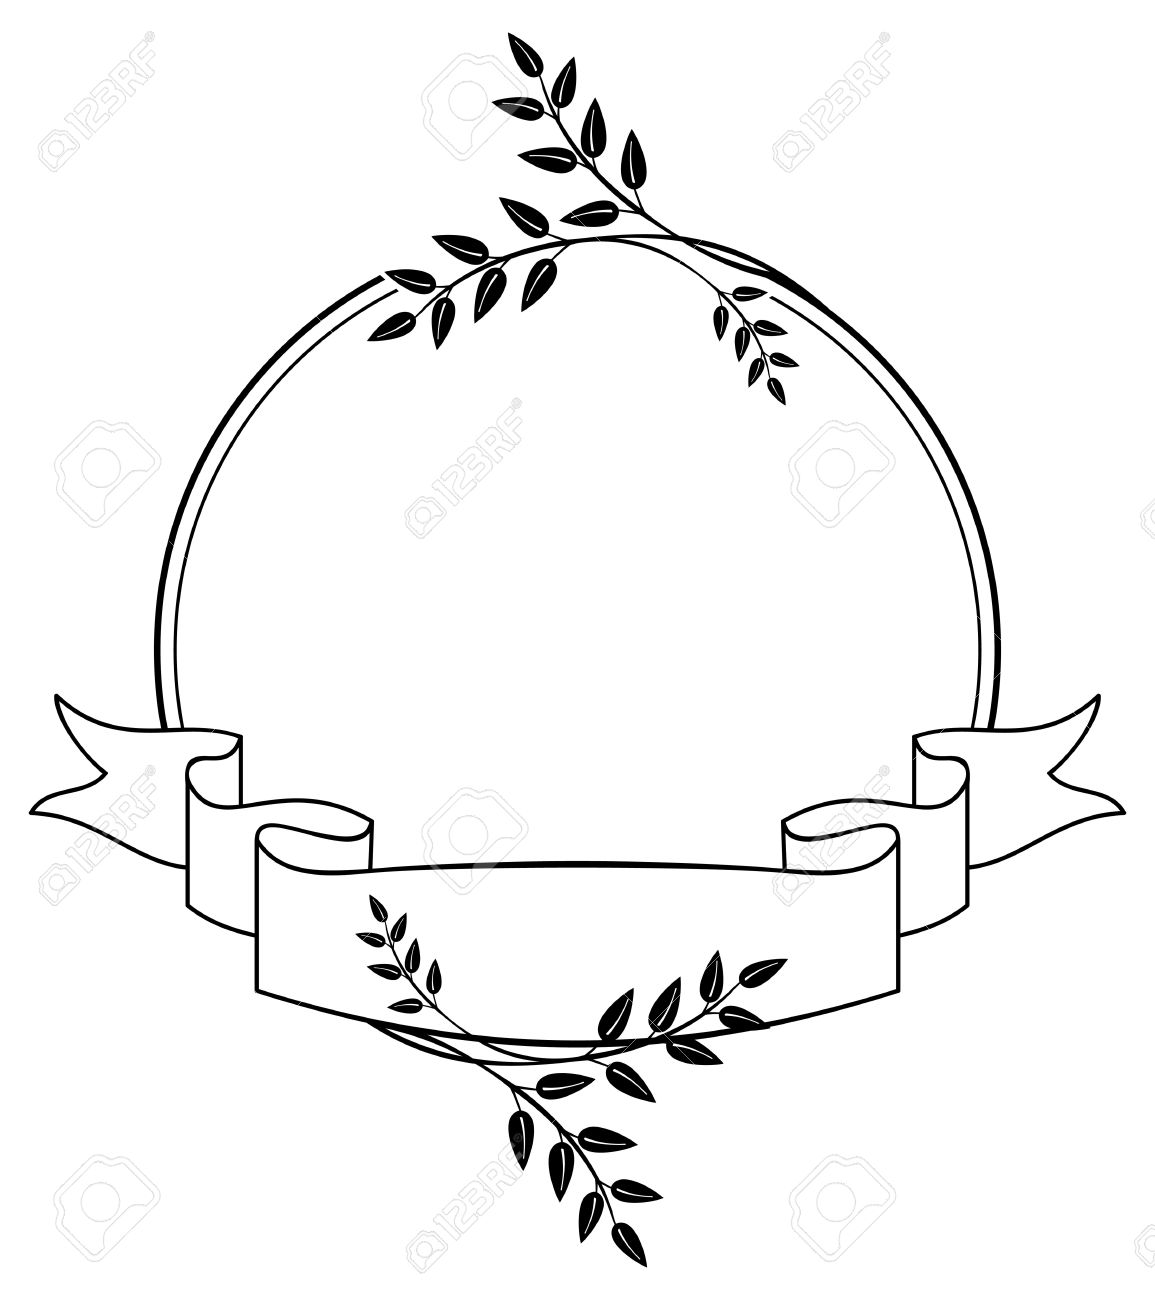 Black And White Round Frame With Floral Silhouettes. Copy Space.